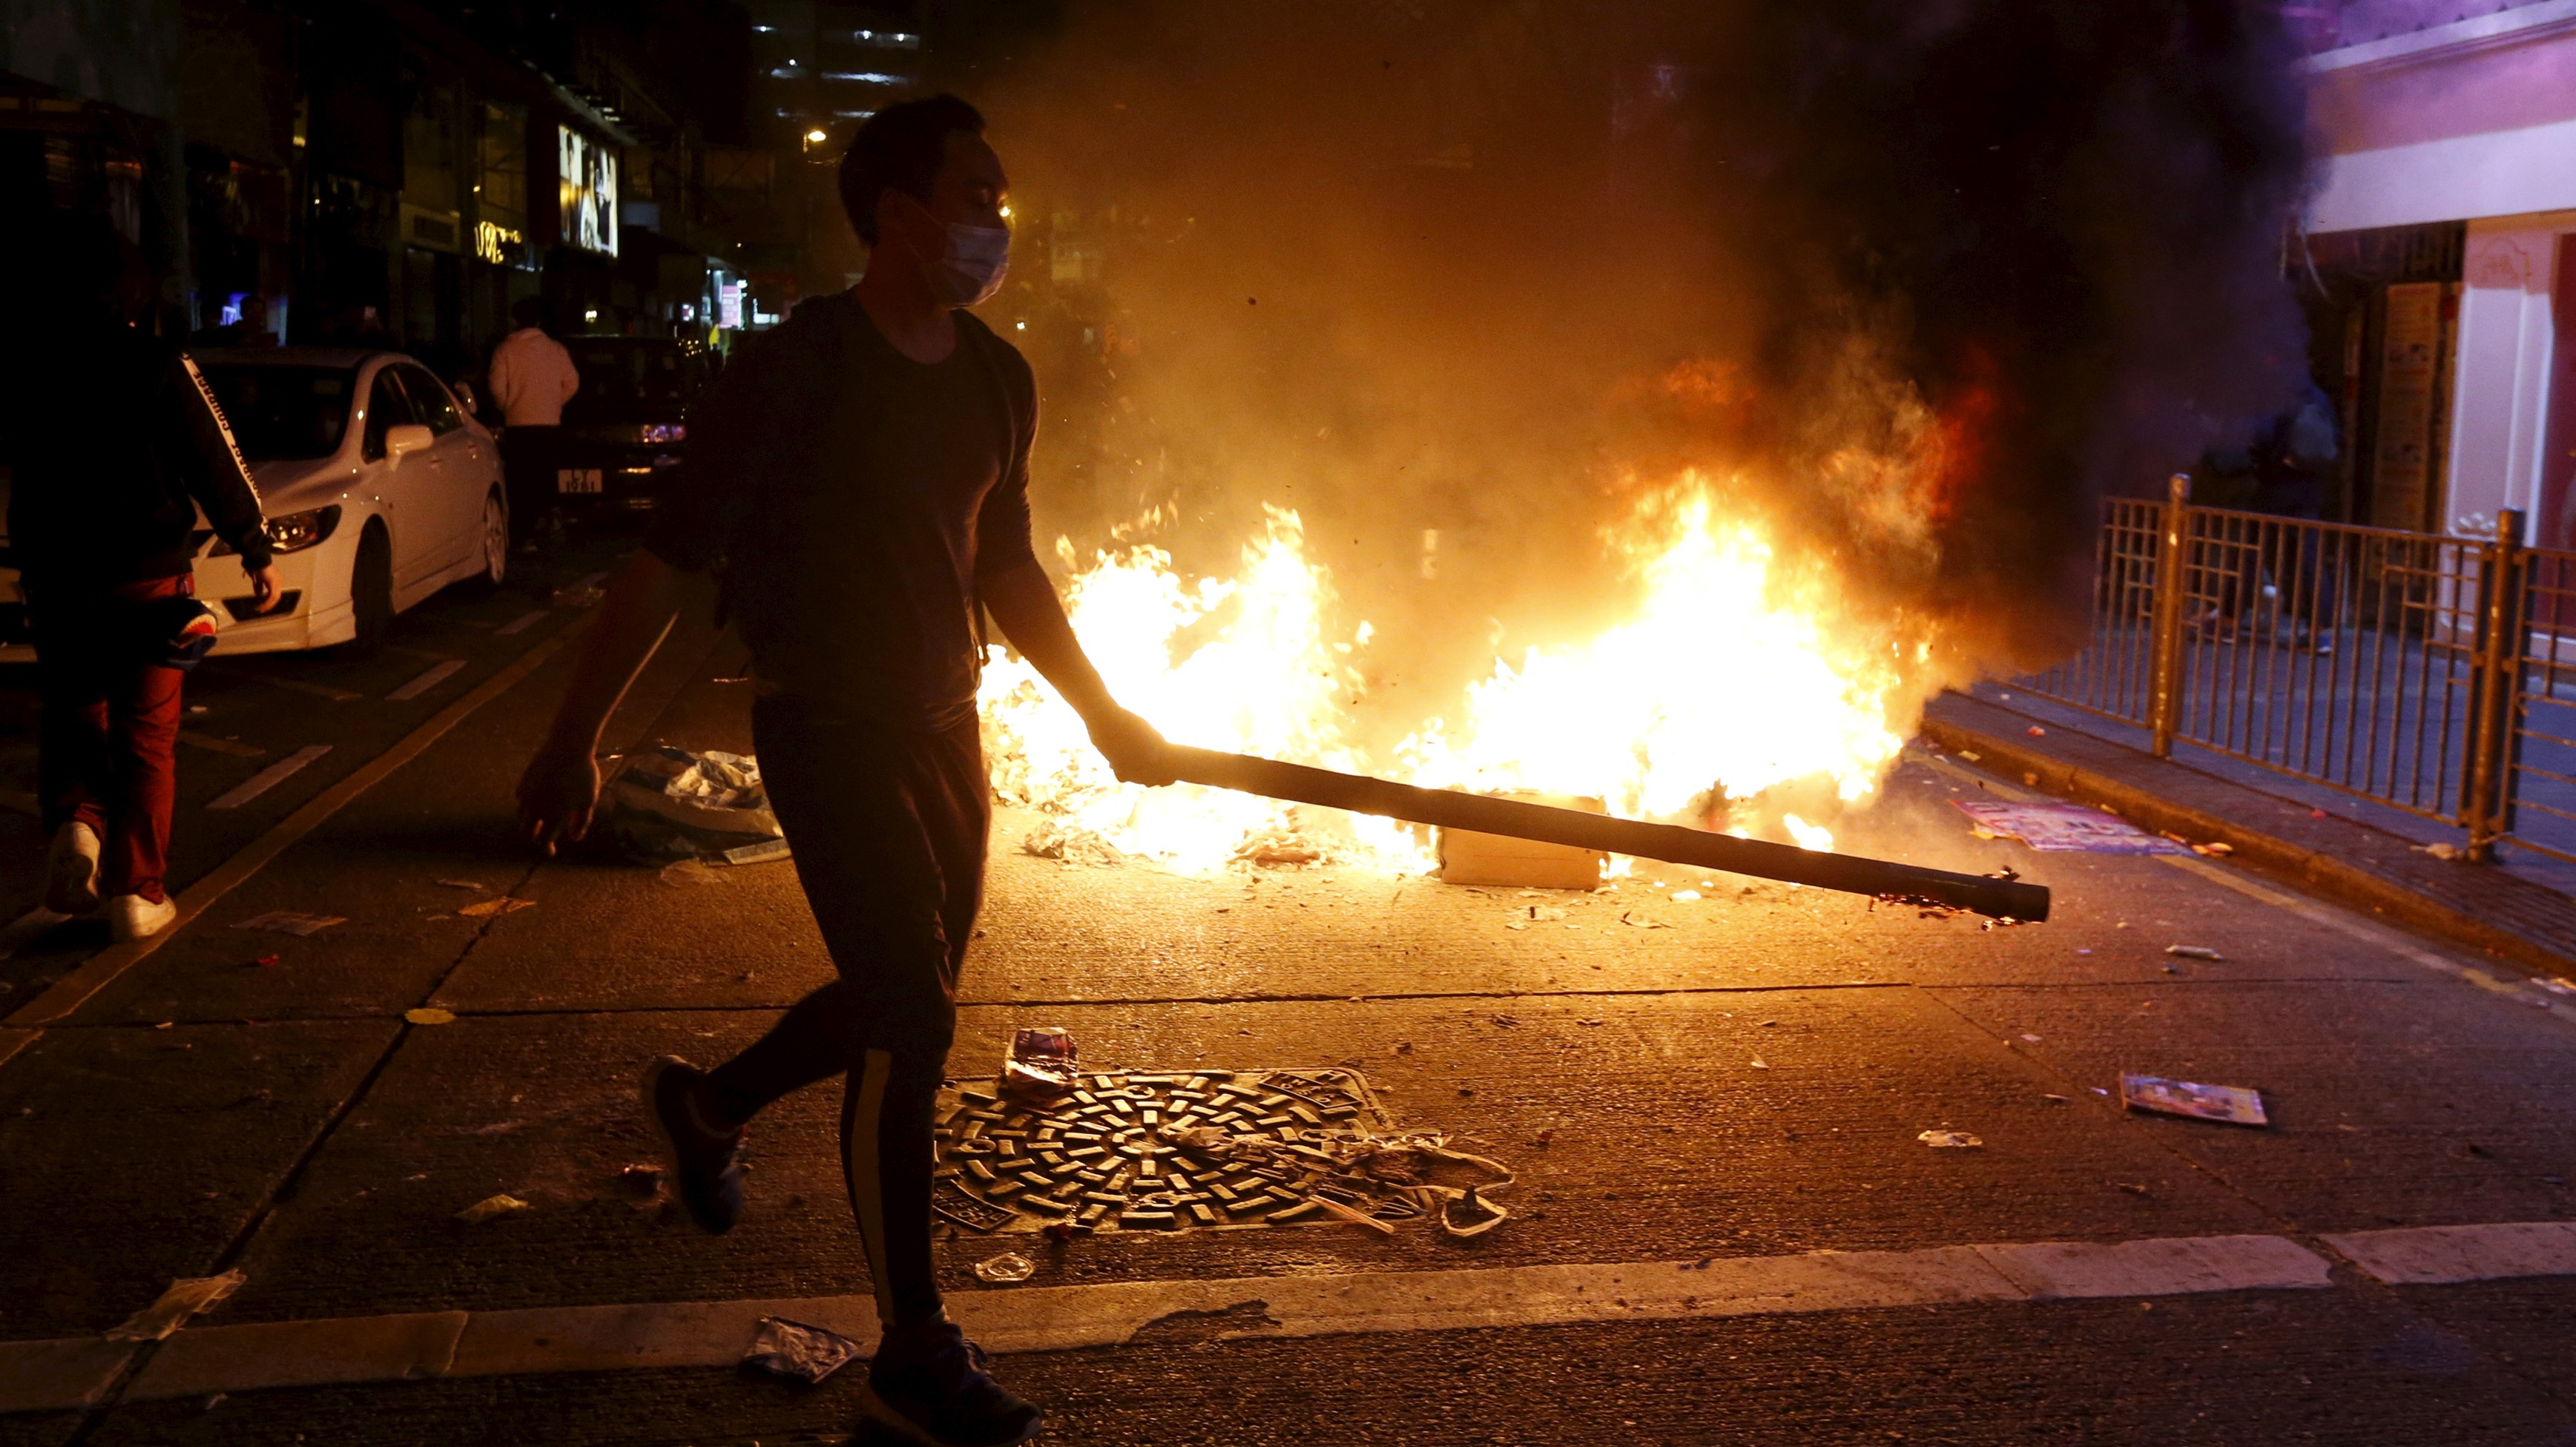 A protester carrying a rod walks past a fire at a junction in Mongkok in Hong Kong, China February 9, 2016. Riot police used batons and pepper spray early on Tuesday to quell fights after authorities tried to move illegal street vendors from a working-class Hong Kong district, the worst street clashes since pro-democracy protests in late 2014.